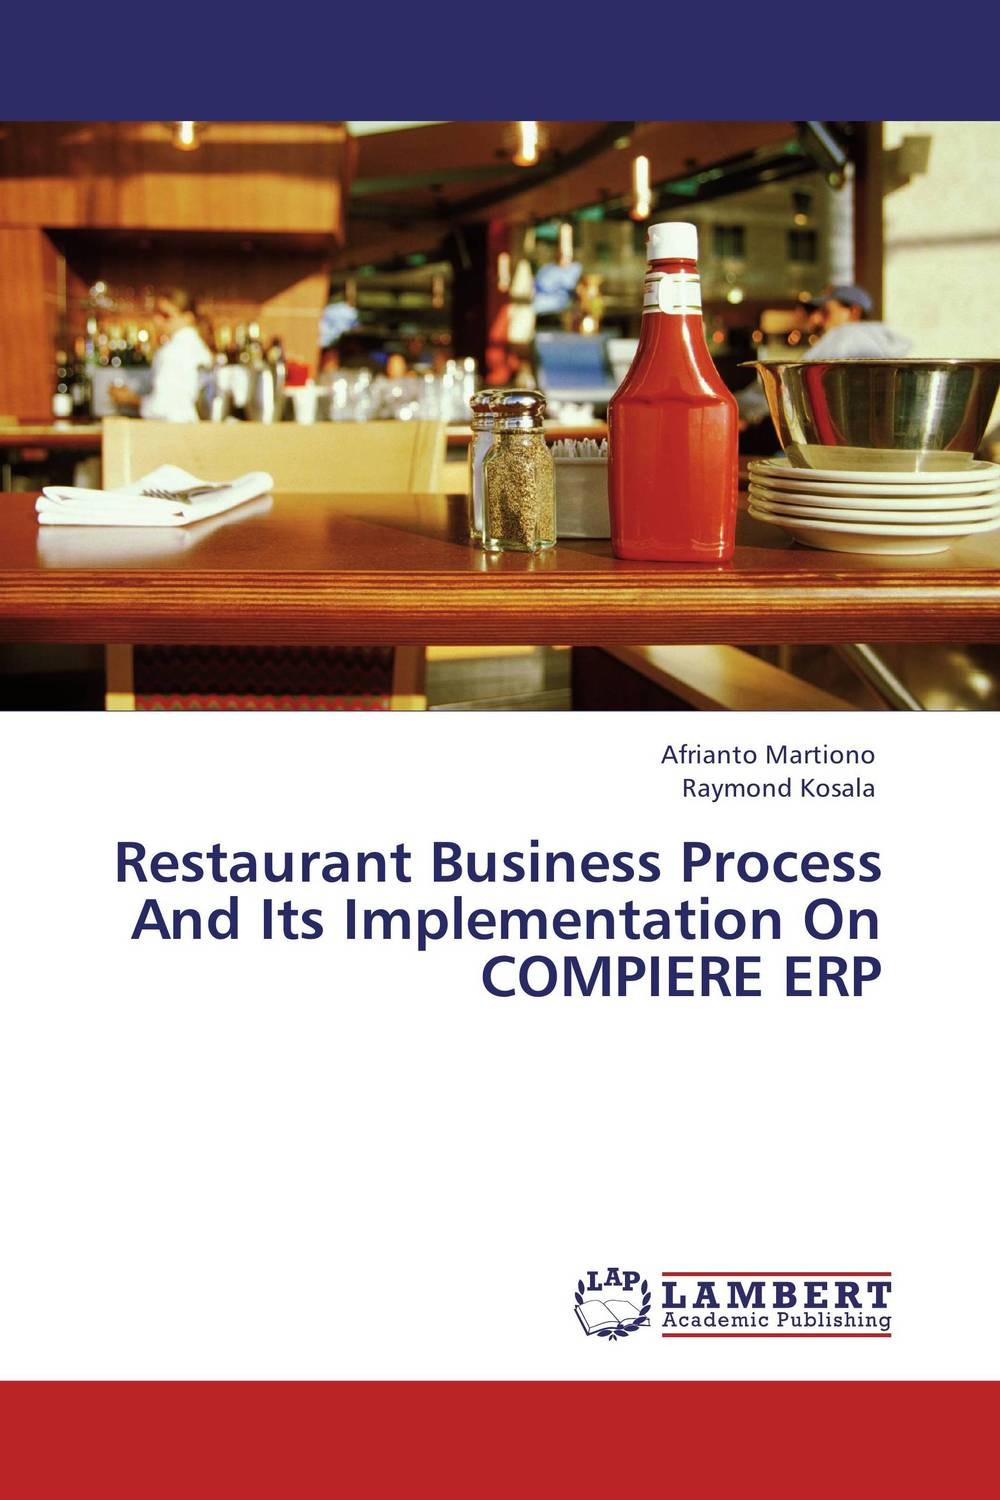 Restaurant Business Process And Its Implementation On COMPIERE ERP jacob thomas empowering process in business organisations